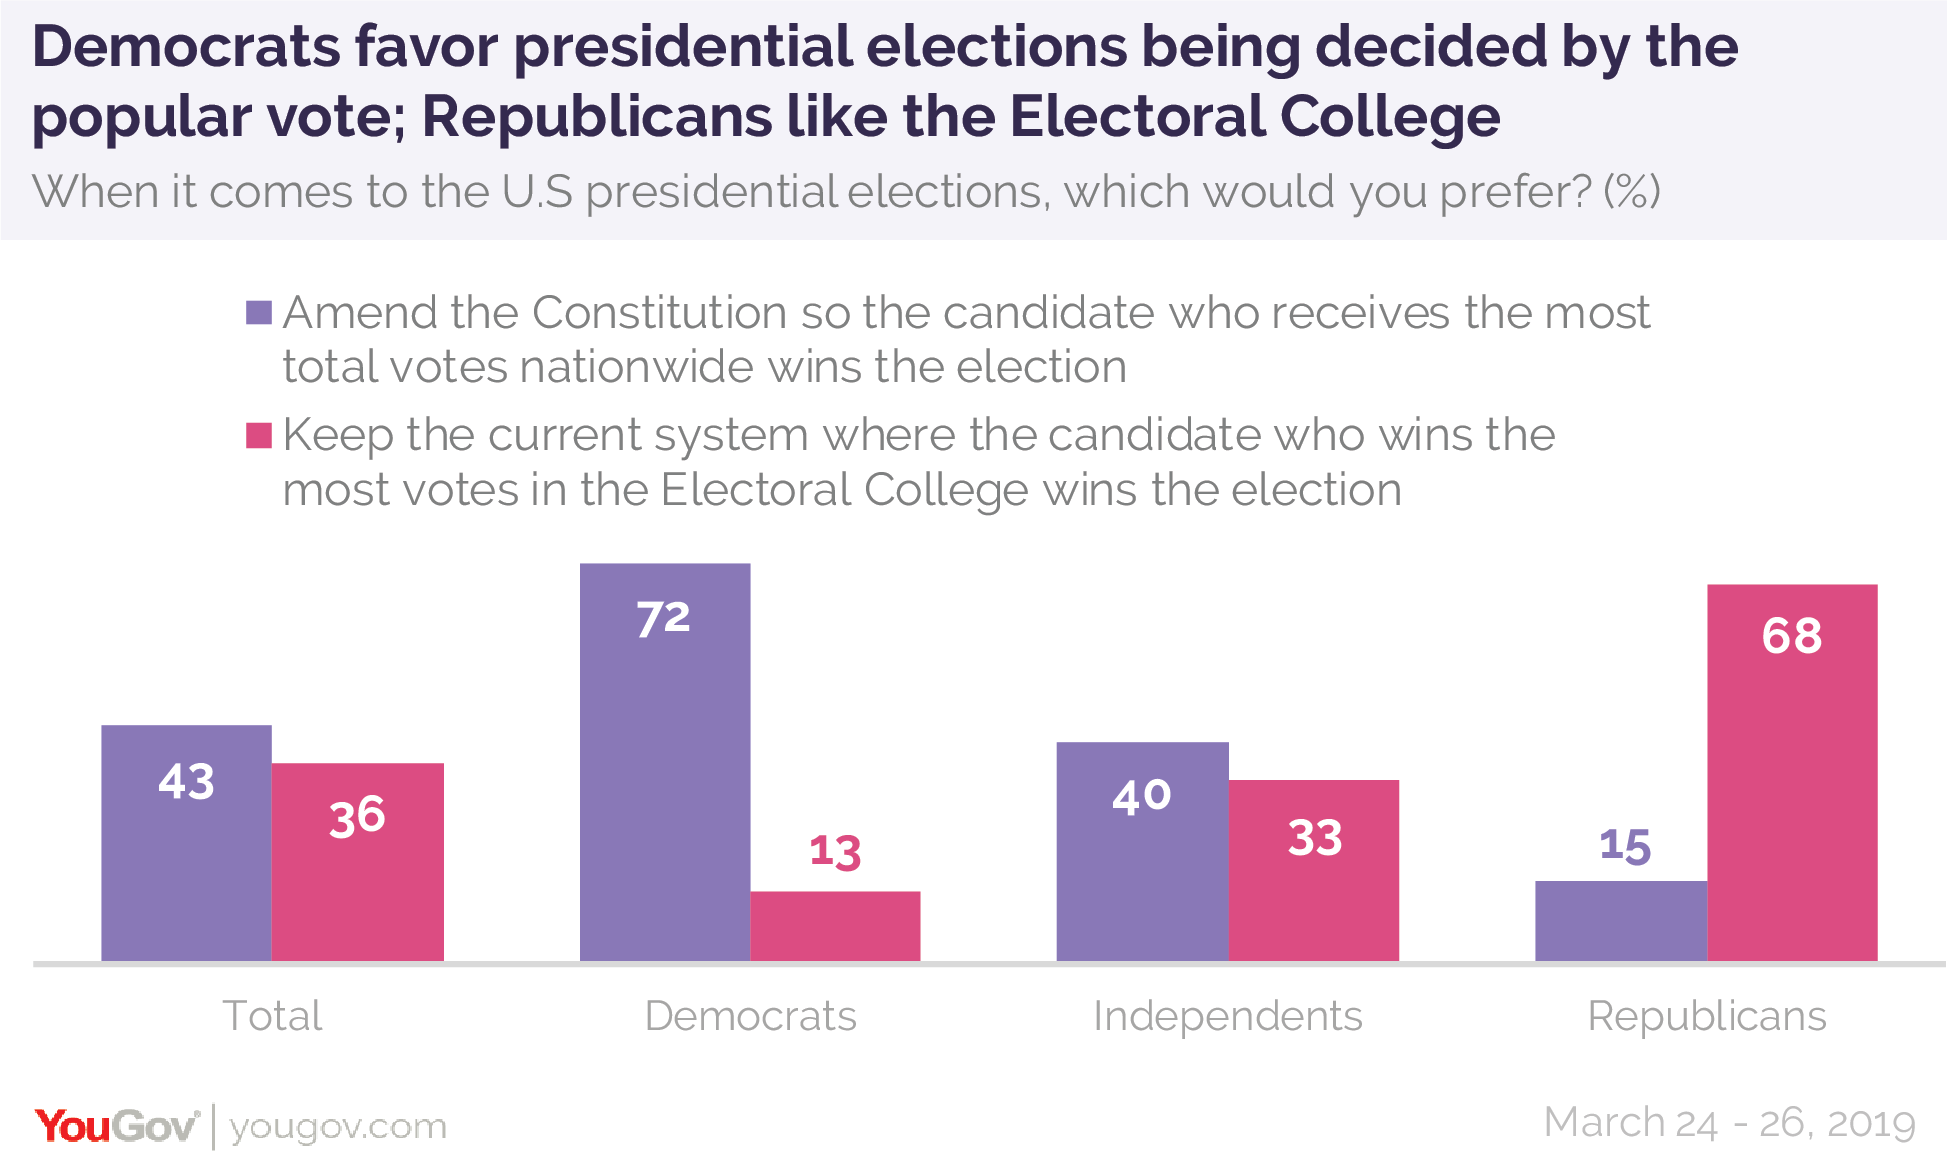 Democrats favor presidential elections being decided by the popular vote; Republicans like the Electoral College